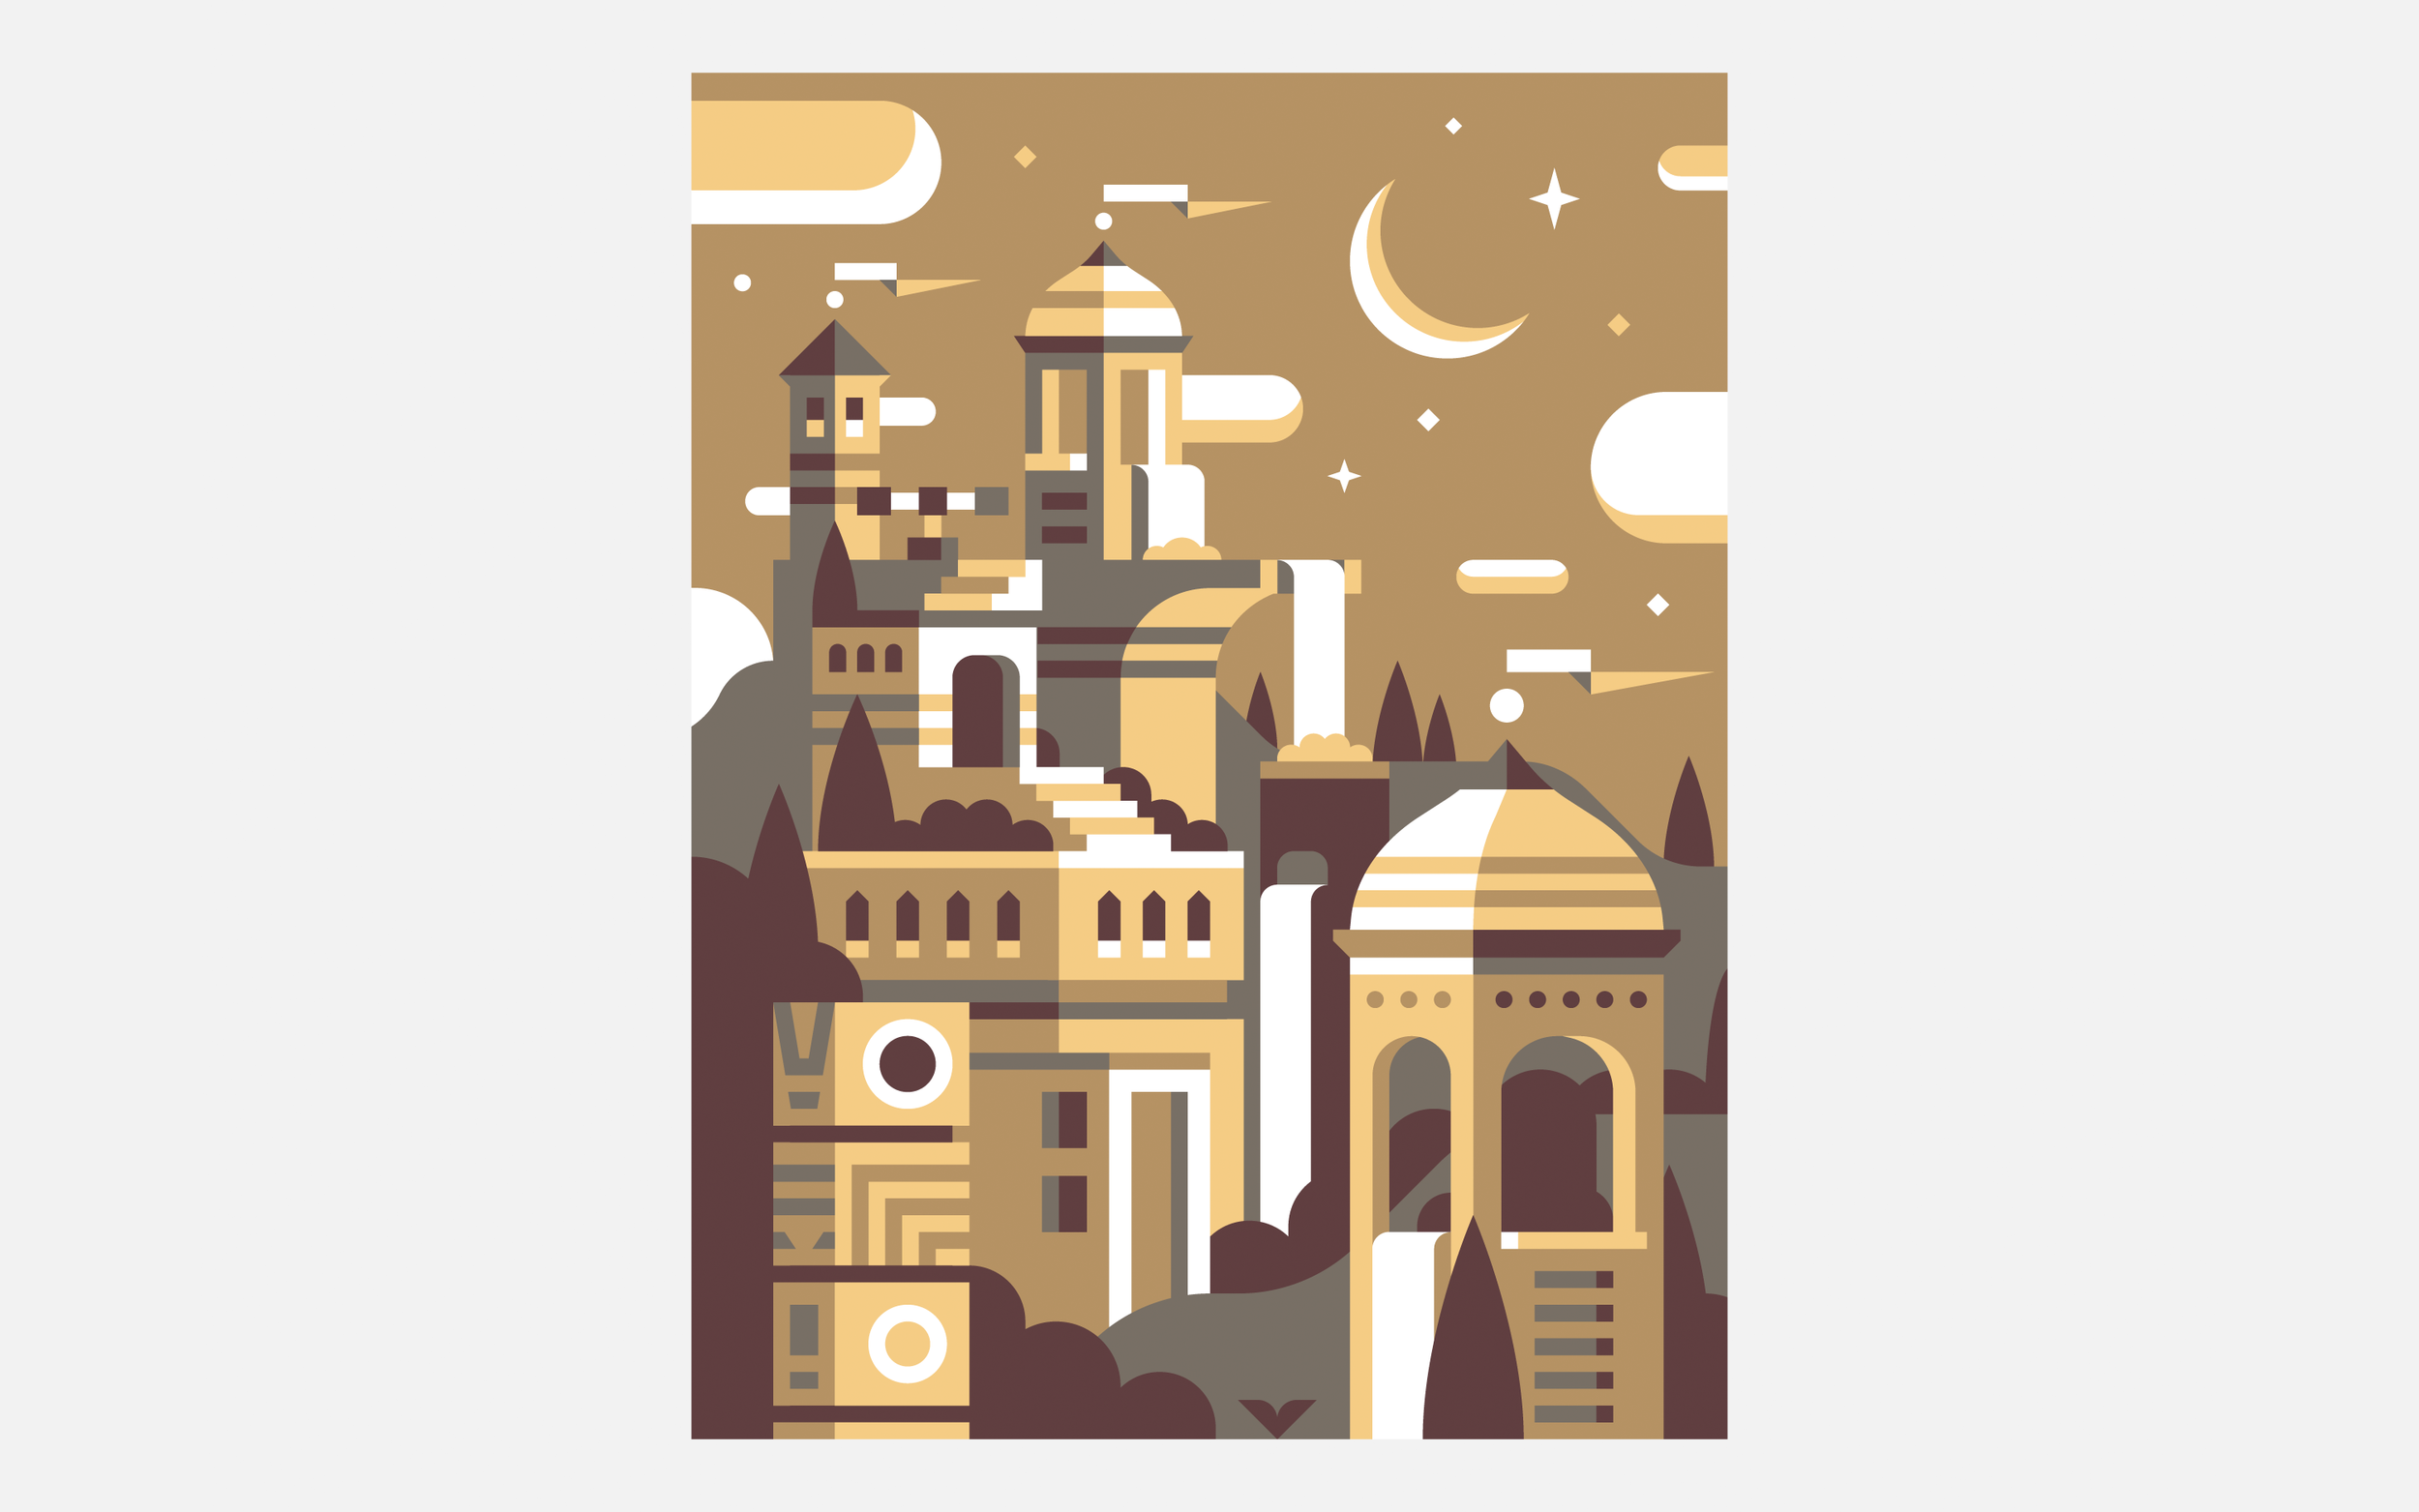 Fortress Monument Valley, Discord Office Divider illustrations by Matt Anderson and Canopy Design and Illustration